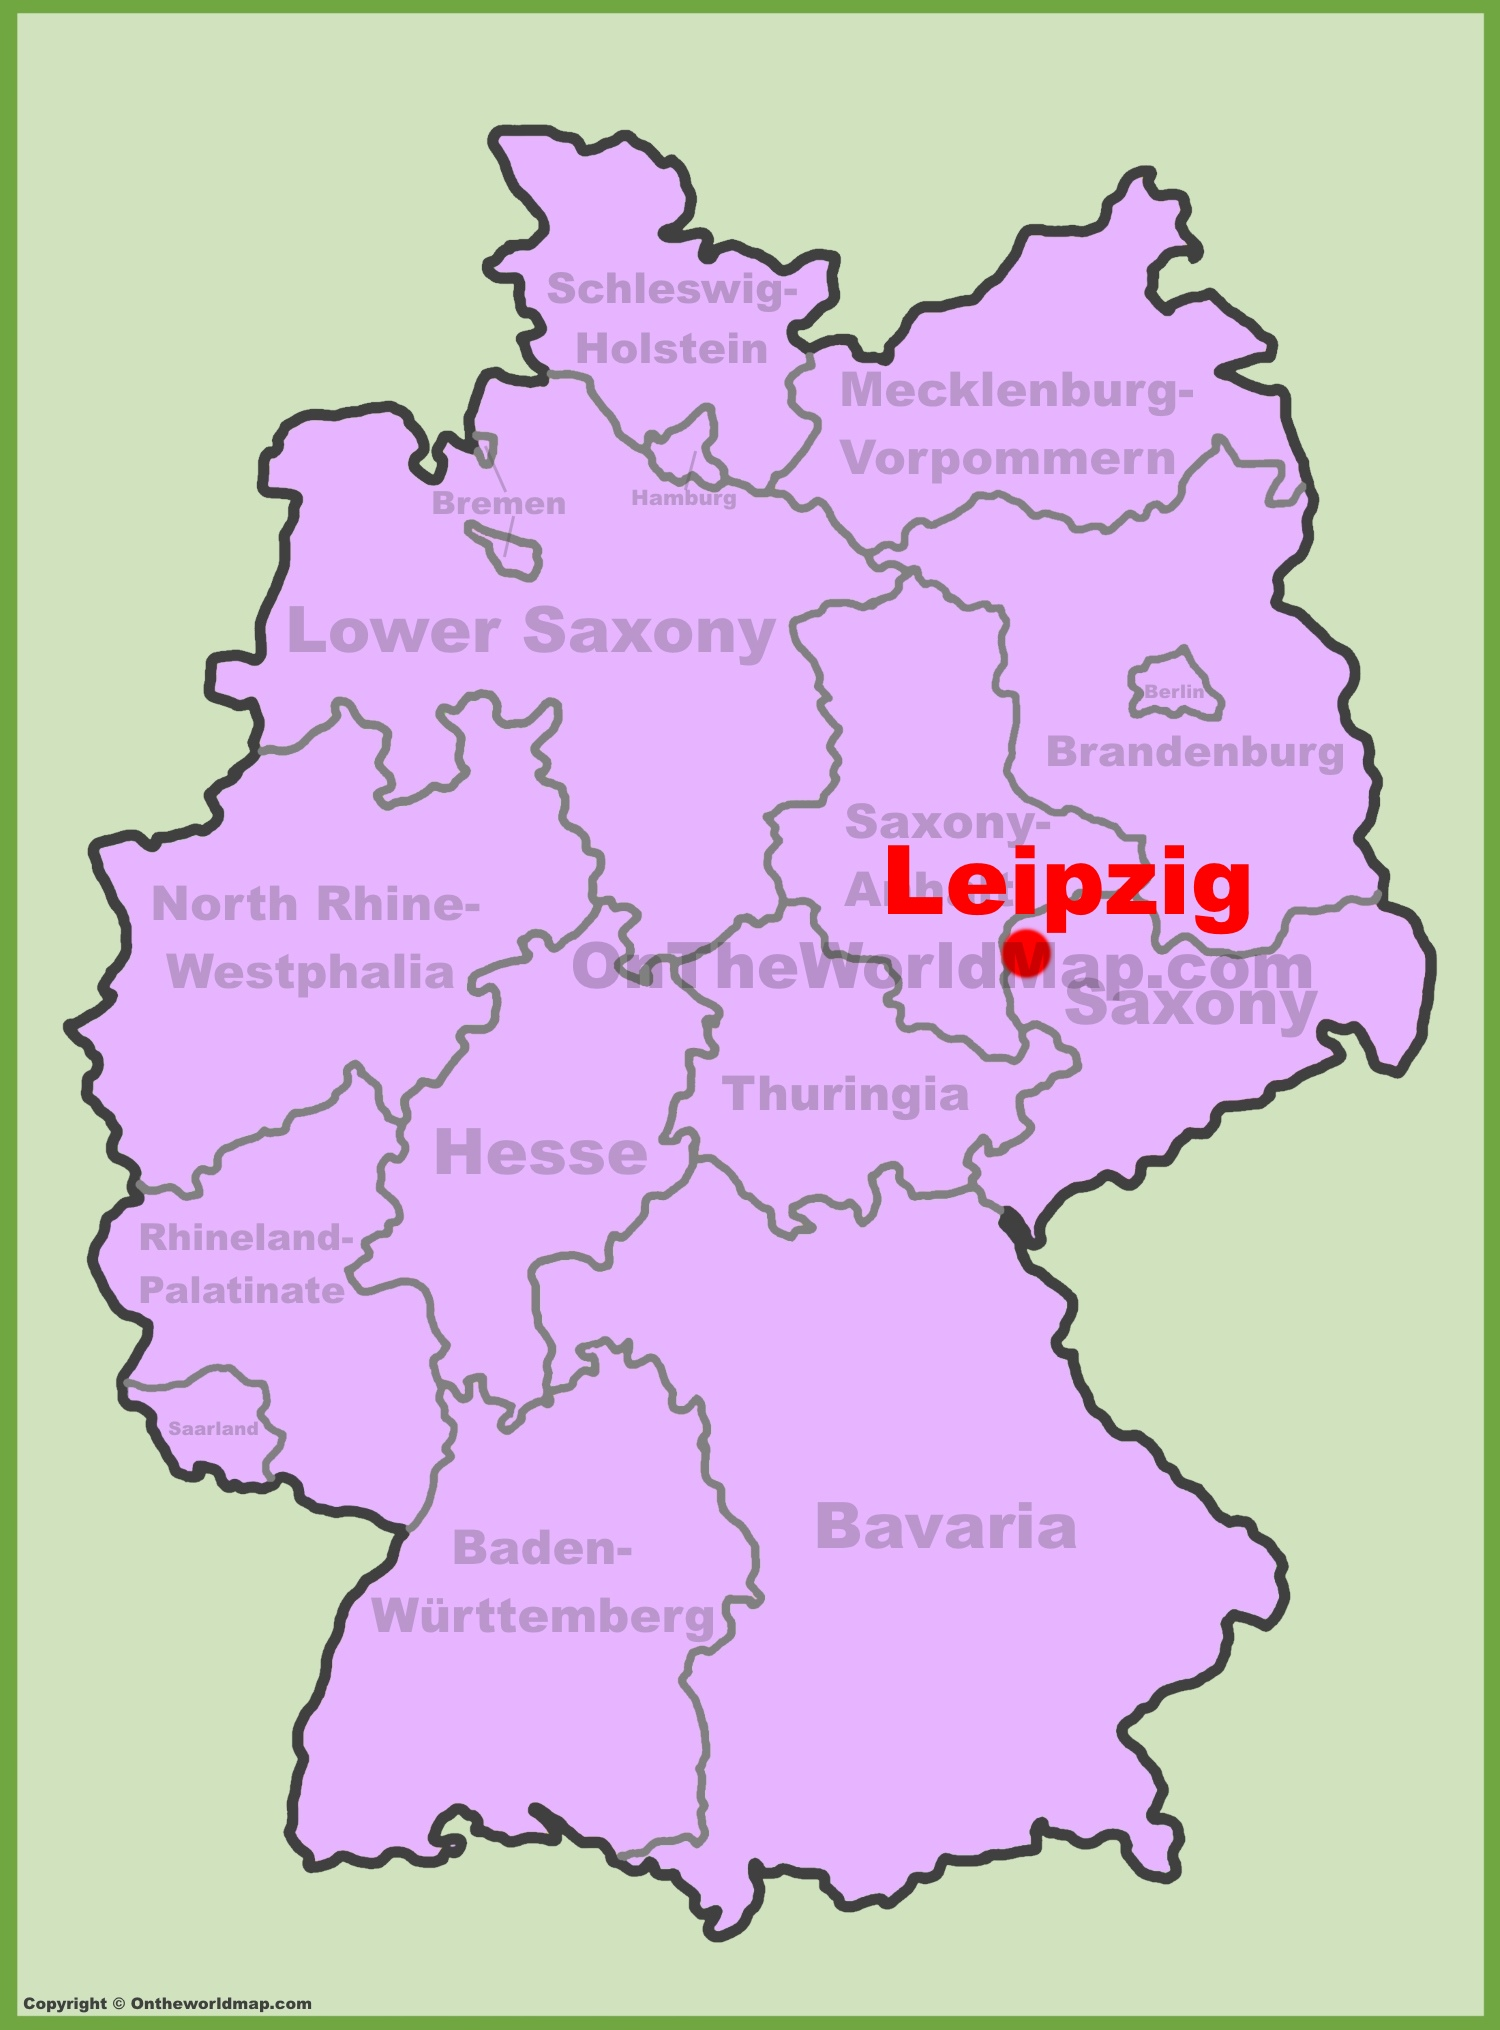 Leipzig location on the Germany map on garmisch germany on map, auschwitz germany on map, osnabruck germany on map, schwangau germany on map, aachen germany on map, fussen germany on map, darmstadt germany on map, berchtesgaden germany on map, oldenburg germany on map, augsburg germany on map, marburg germany on map, grafenwoehr germany on map, bremen germany on map, rothenburg germany on map, karlsruhe germany on map, amsterdam germany on map, landstuhl germany on map, kiel germany on map, luneburg germany on map, kaiserslautern germany on map,